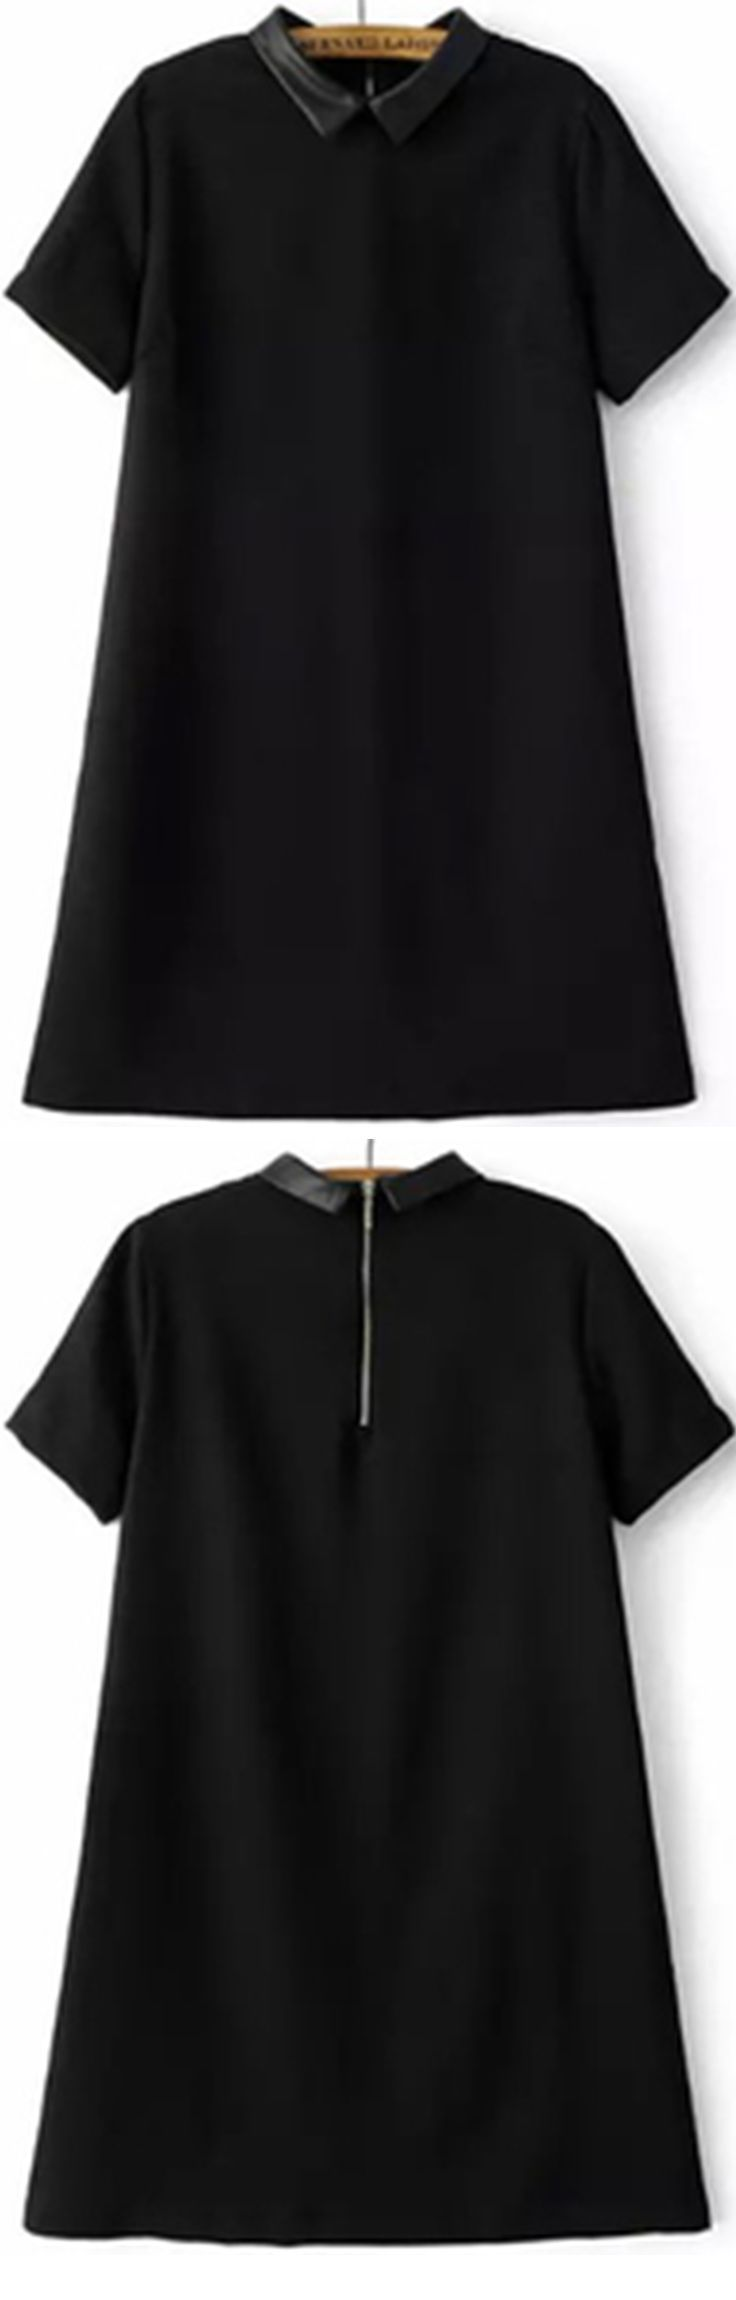 My new shirt dress for work day of new year .  Click to shop with 55% off ! Black doll collar and a line dress will never wrong . So adroable, isn't it ? - womens long black dress, gorgeous dresses, black white and red dress *ad